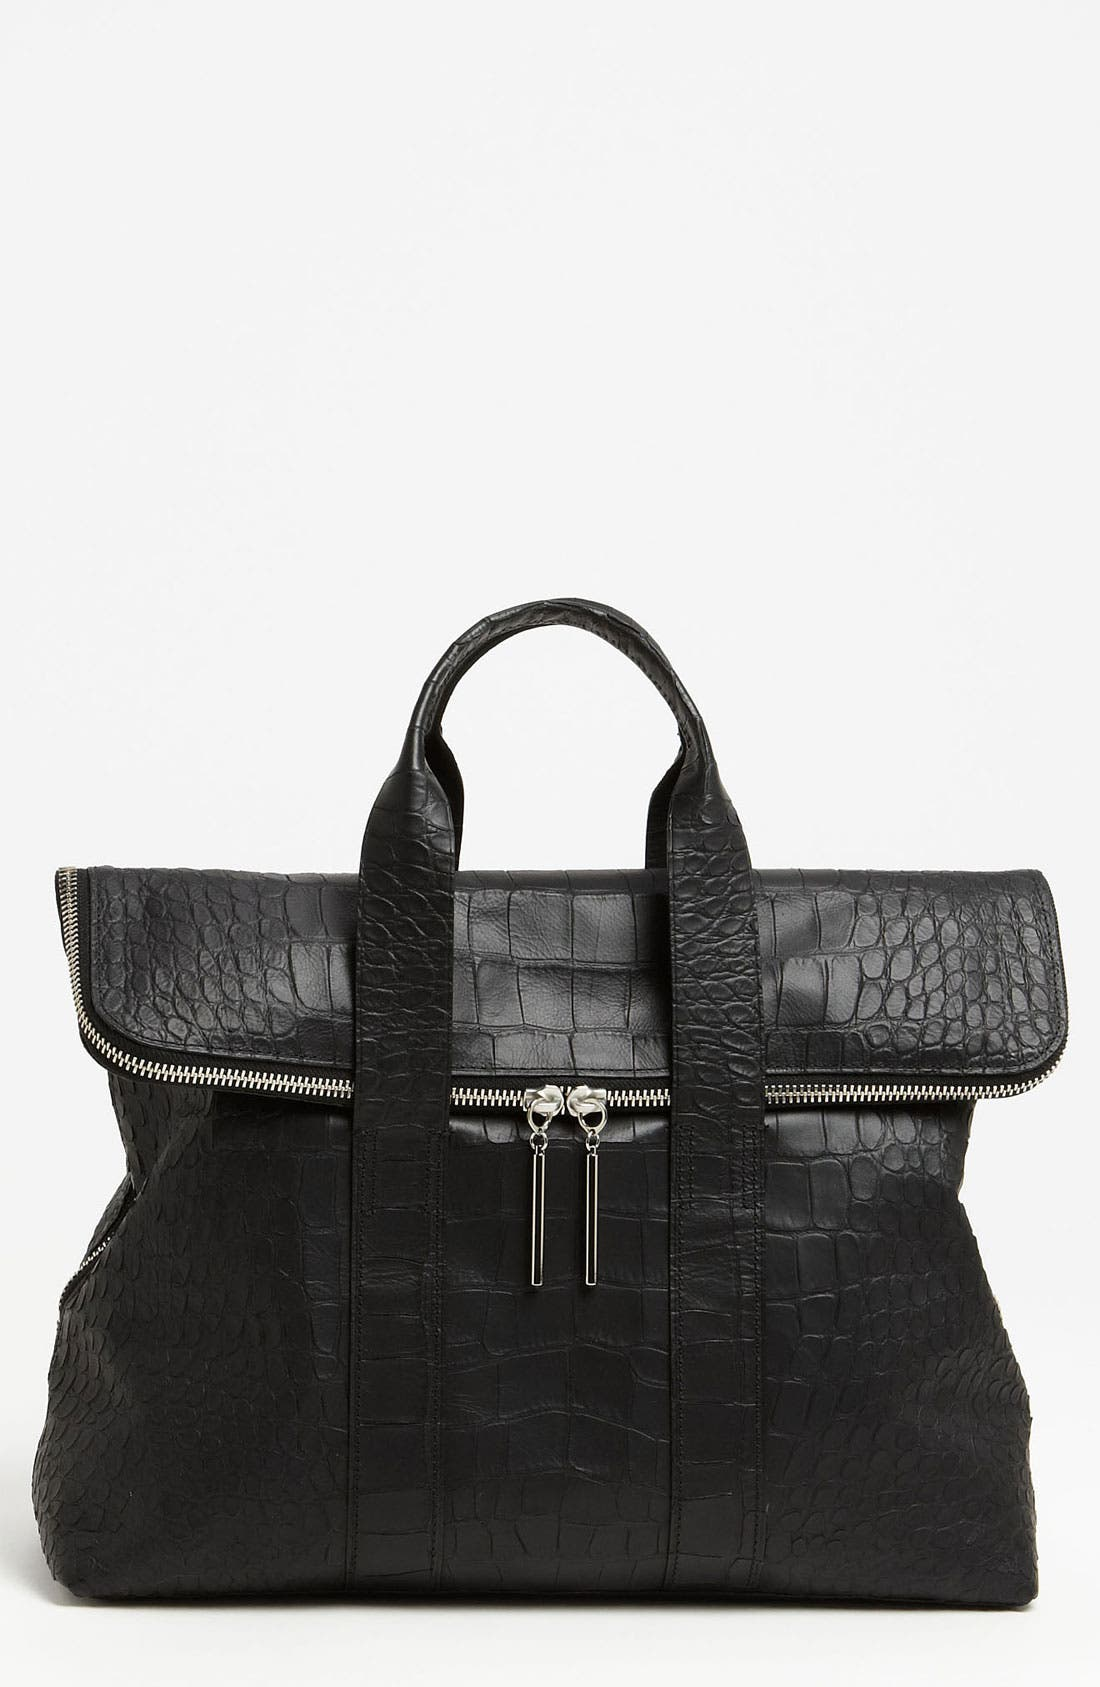 Main Image - 3.1 Phillip Lim '31 Hour' Croc Embossed Leather Tote